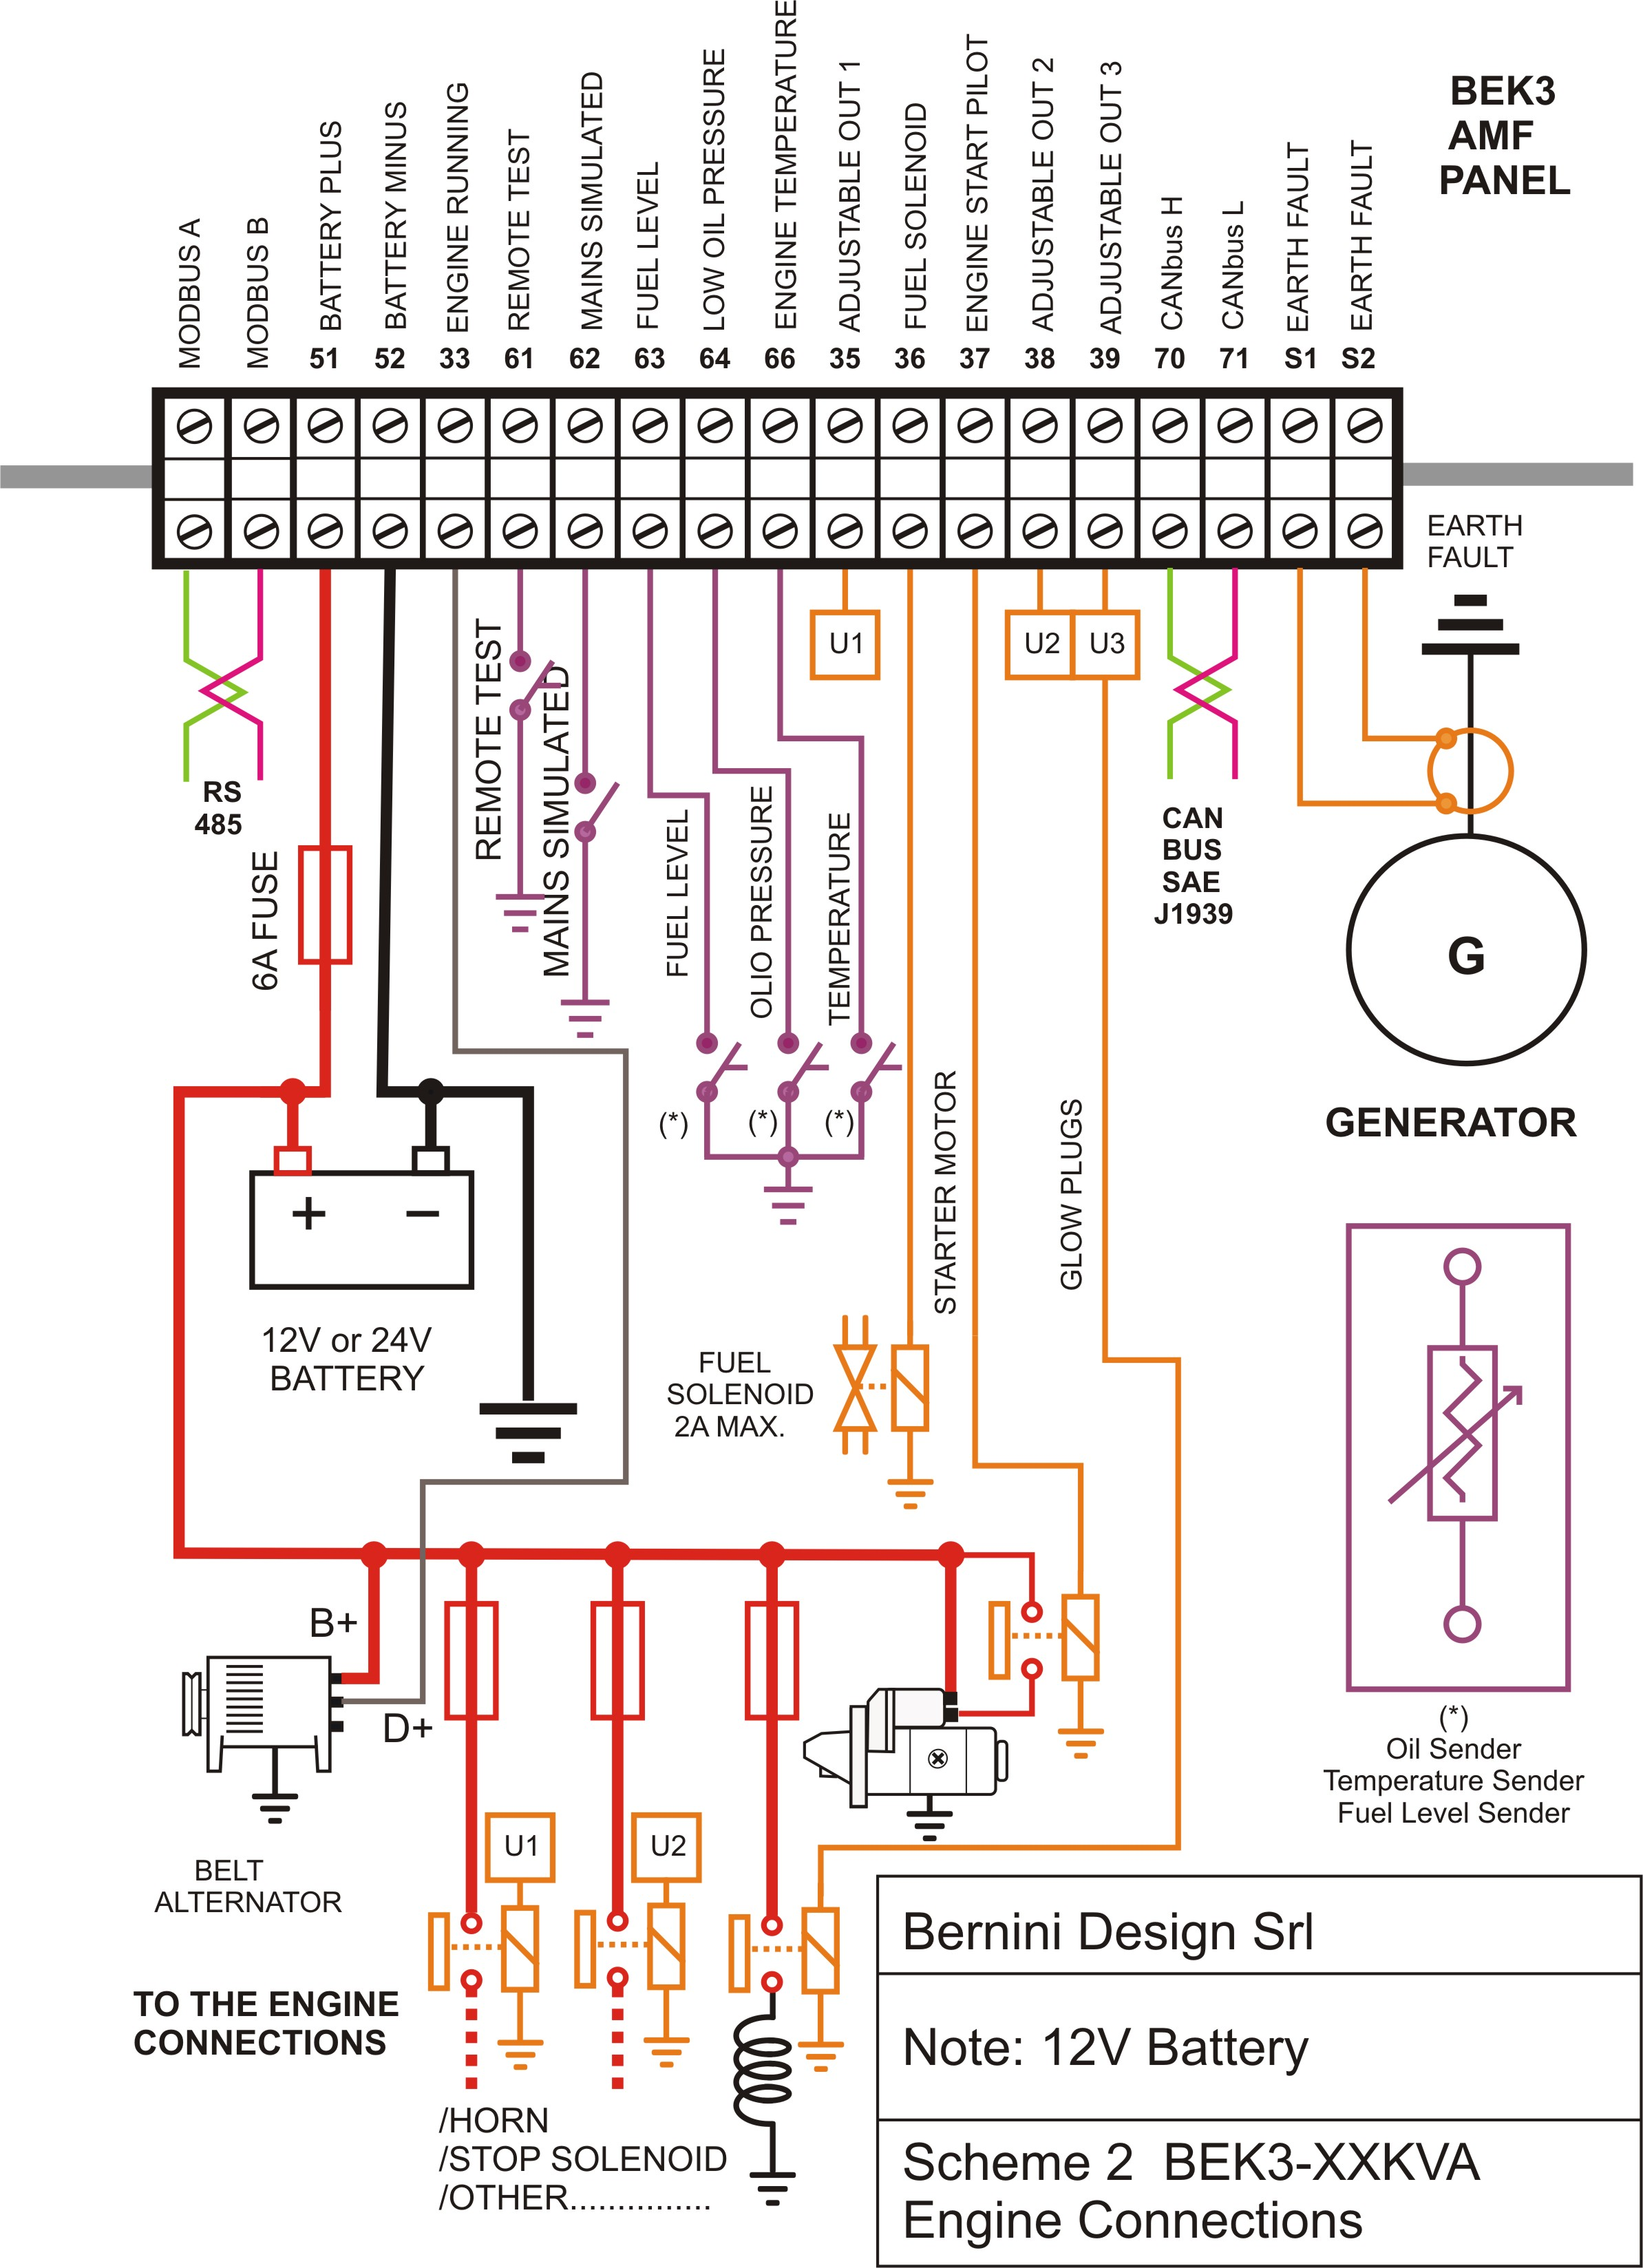 AMF Control Panel Circuit Diagram PDF Engine Connections acb panel wiring diagram service wiring diagram \u2022 wiring diagram  at readyjetset.co